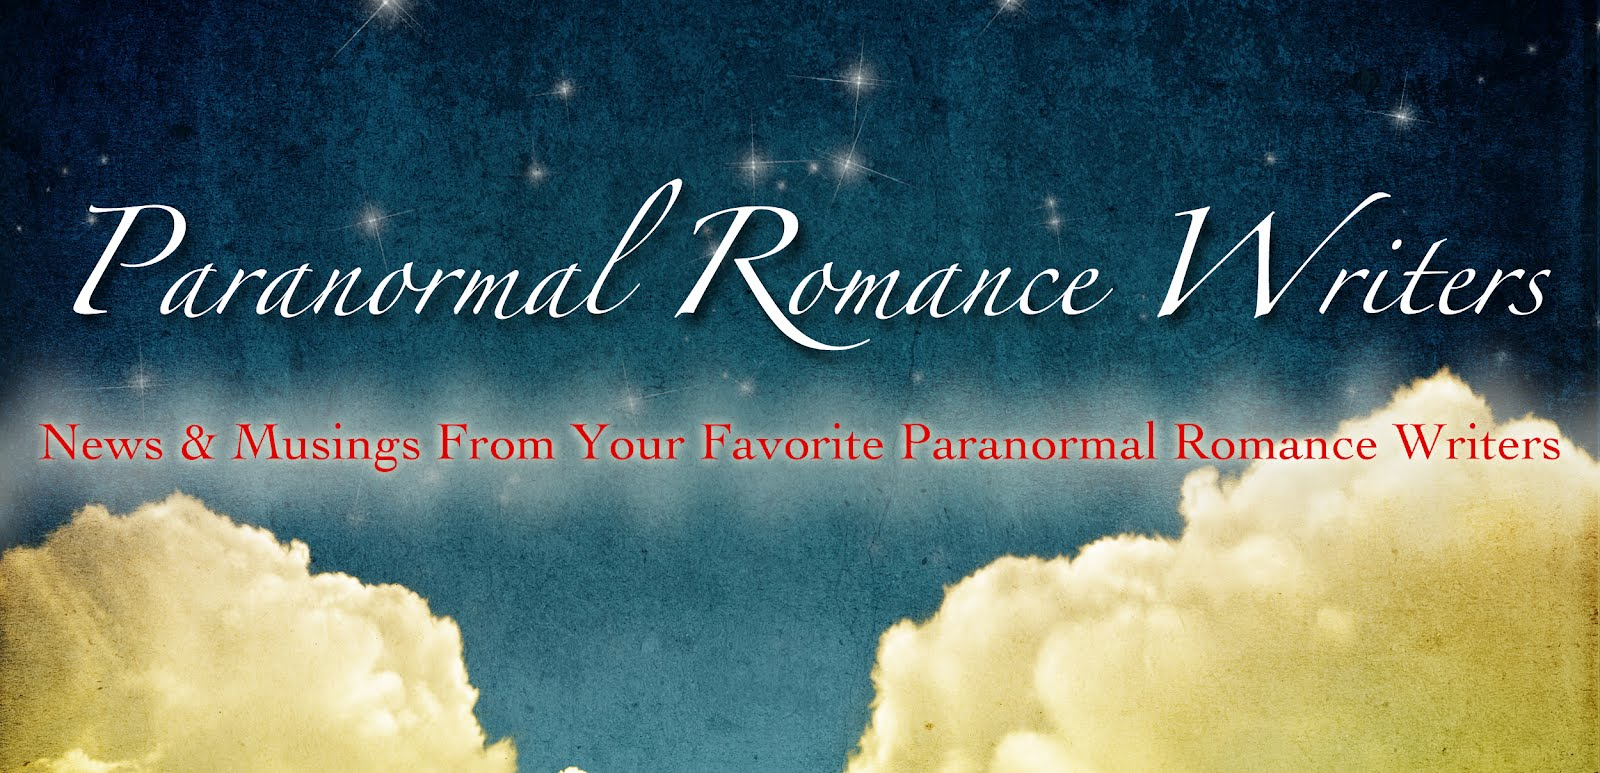 Paranormal Romance Writers